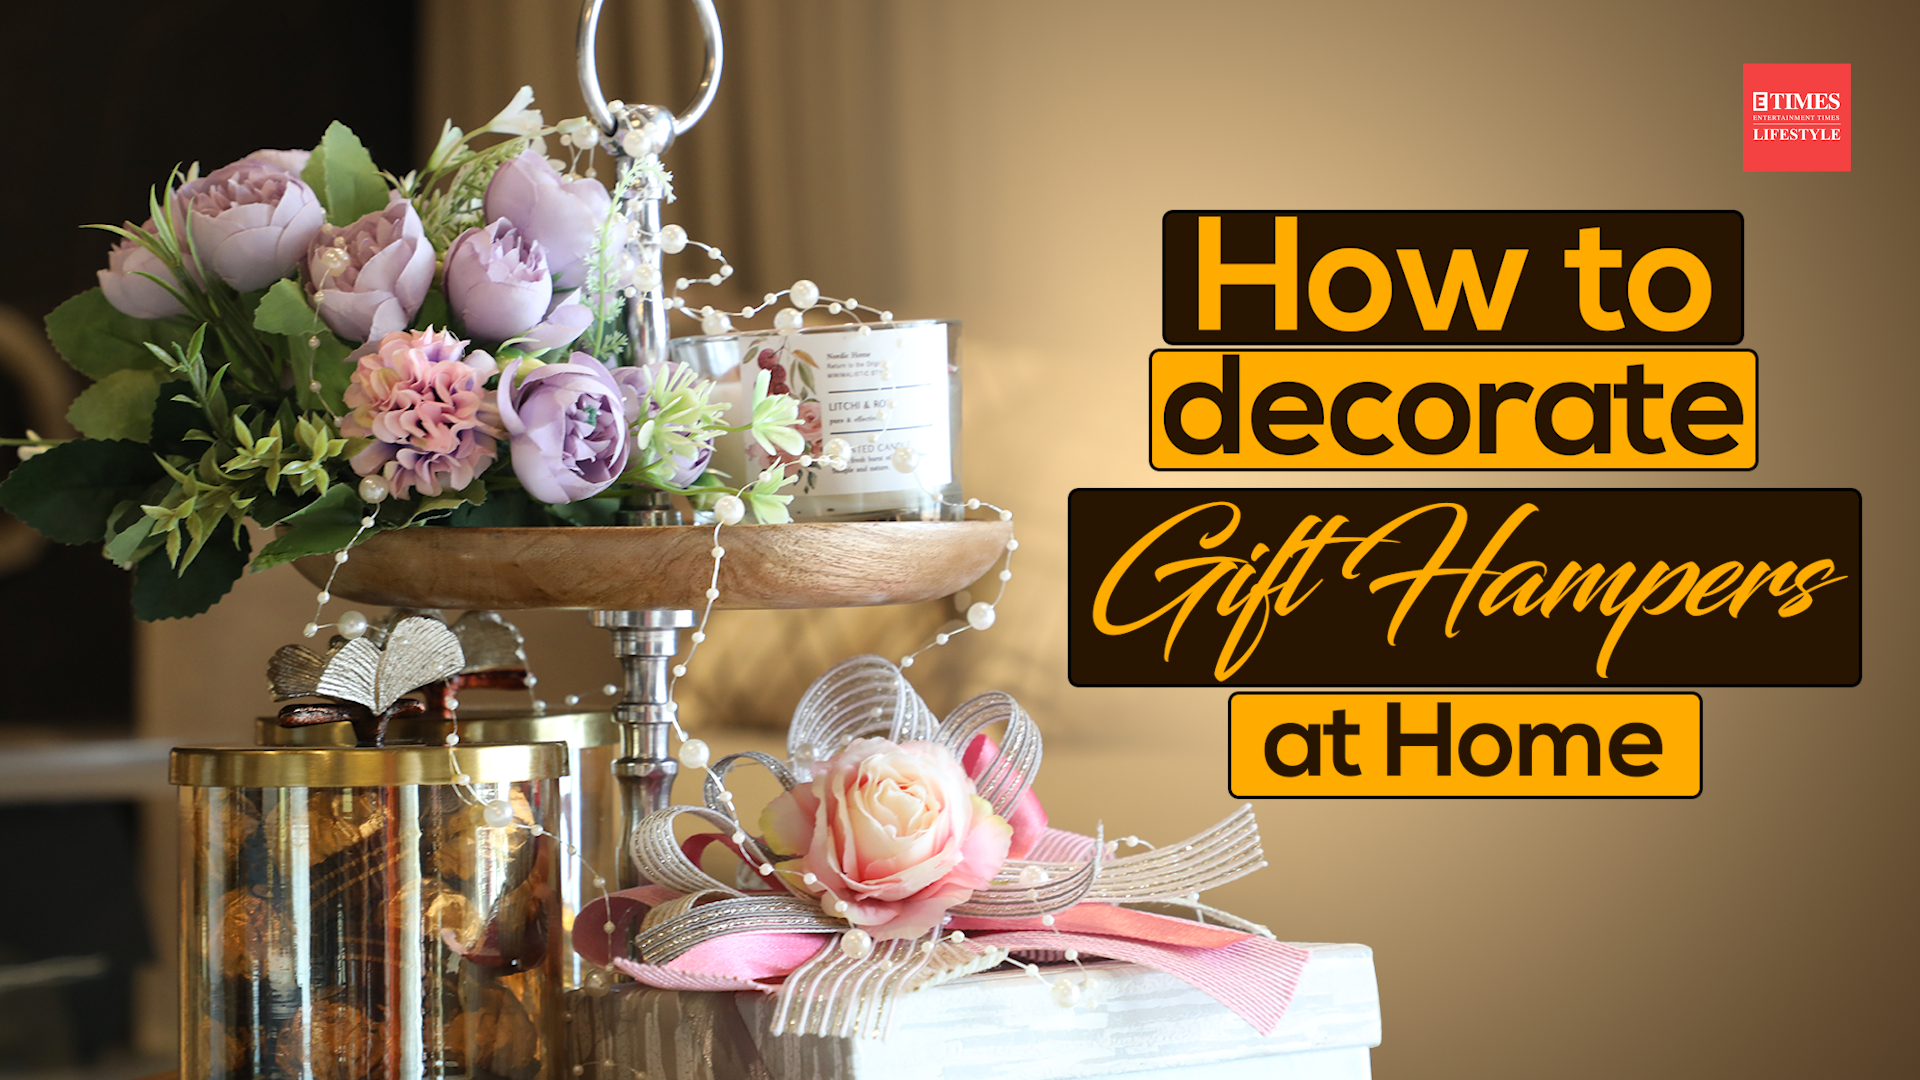 how-to-decorate-gift-hampers-at-home